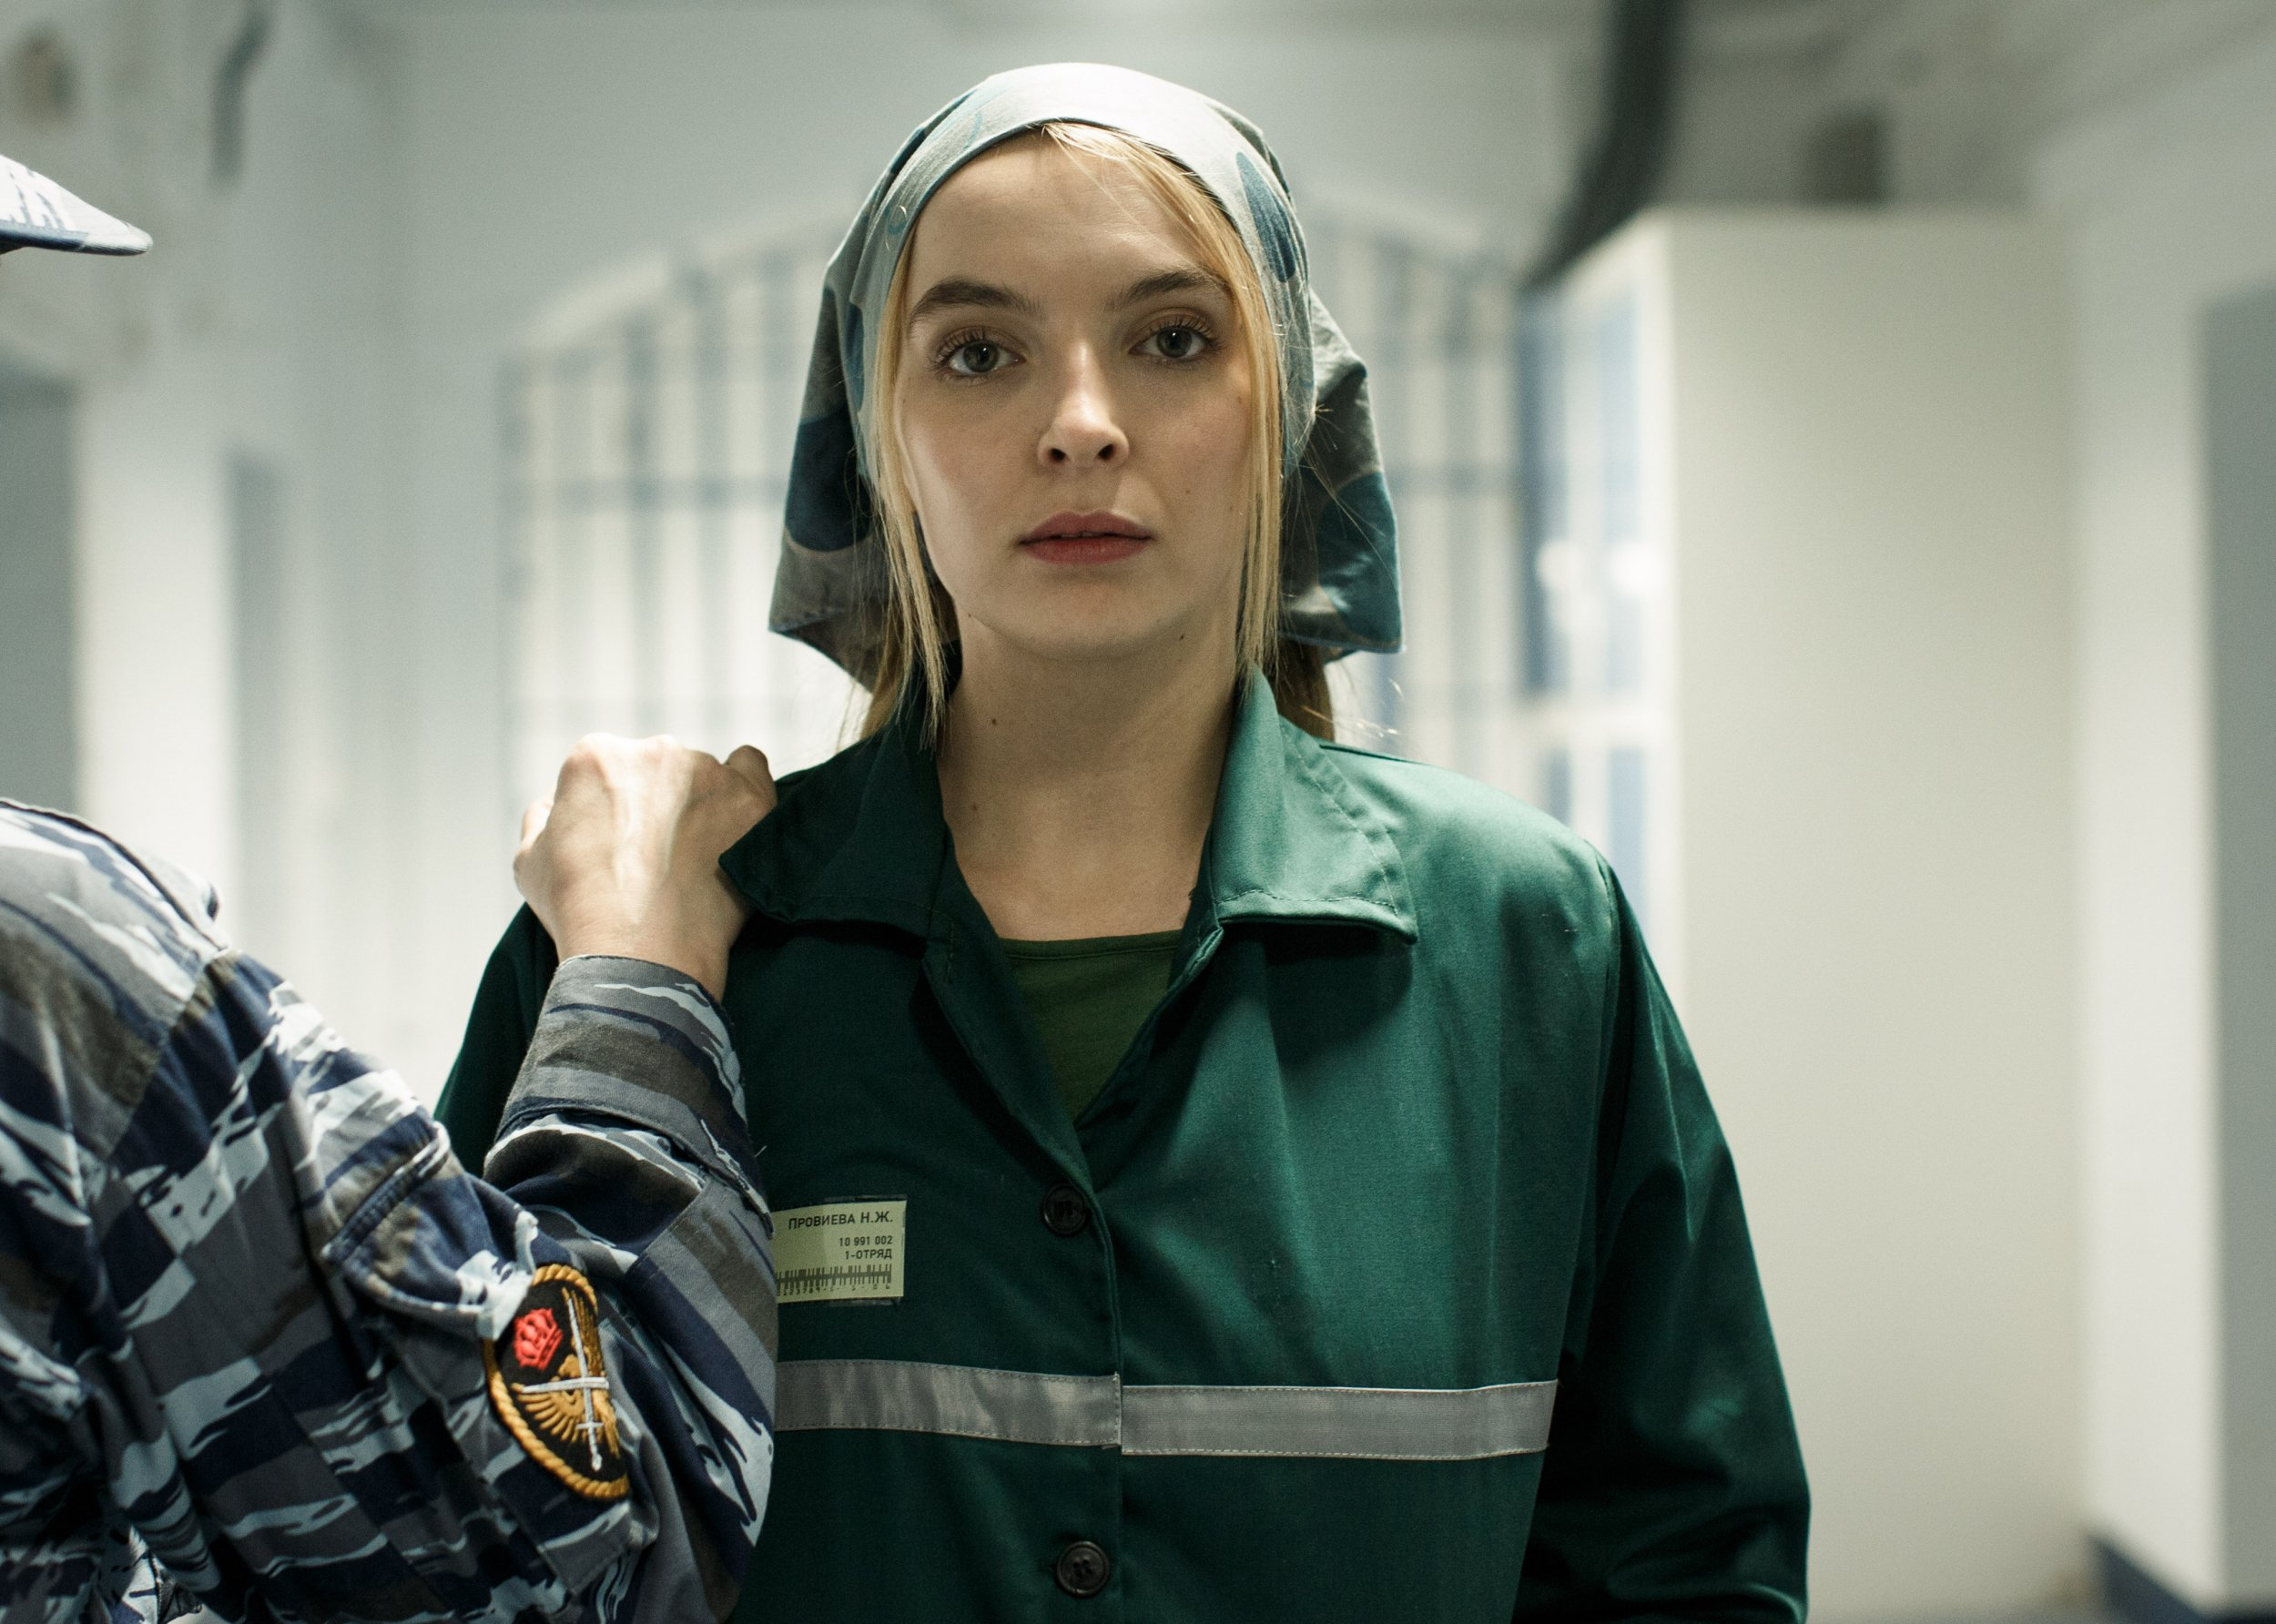 WARNING: Embargoed for publication until 00:00:01 on 16/10/2018 - Programme Name: Killing Eve - TX: n/a - Episode: n/a (No. Ep 6) - Picture Shows: *STRICTLY NOT FOR PUBLICATION UNTIL 00:01HRS, TUESDAY 16TH OCTOBER, 2018* Villanelle (JODIE COMER) - (C) Sid Gentle Films - Photographer: Nick Briggs